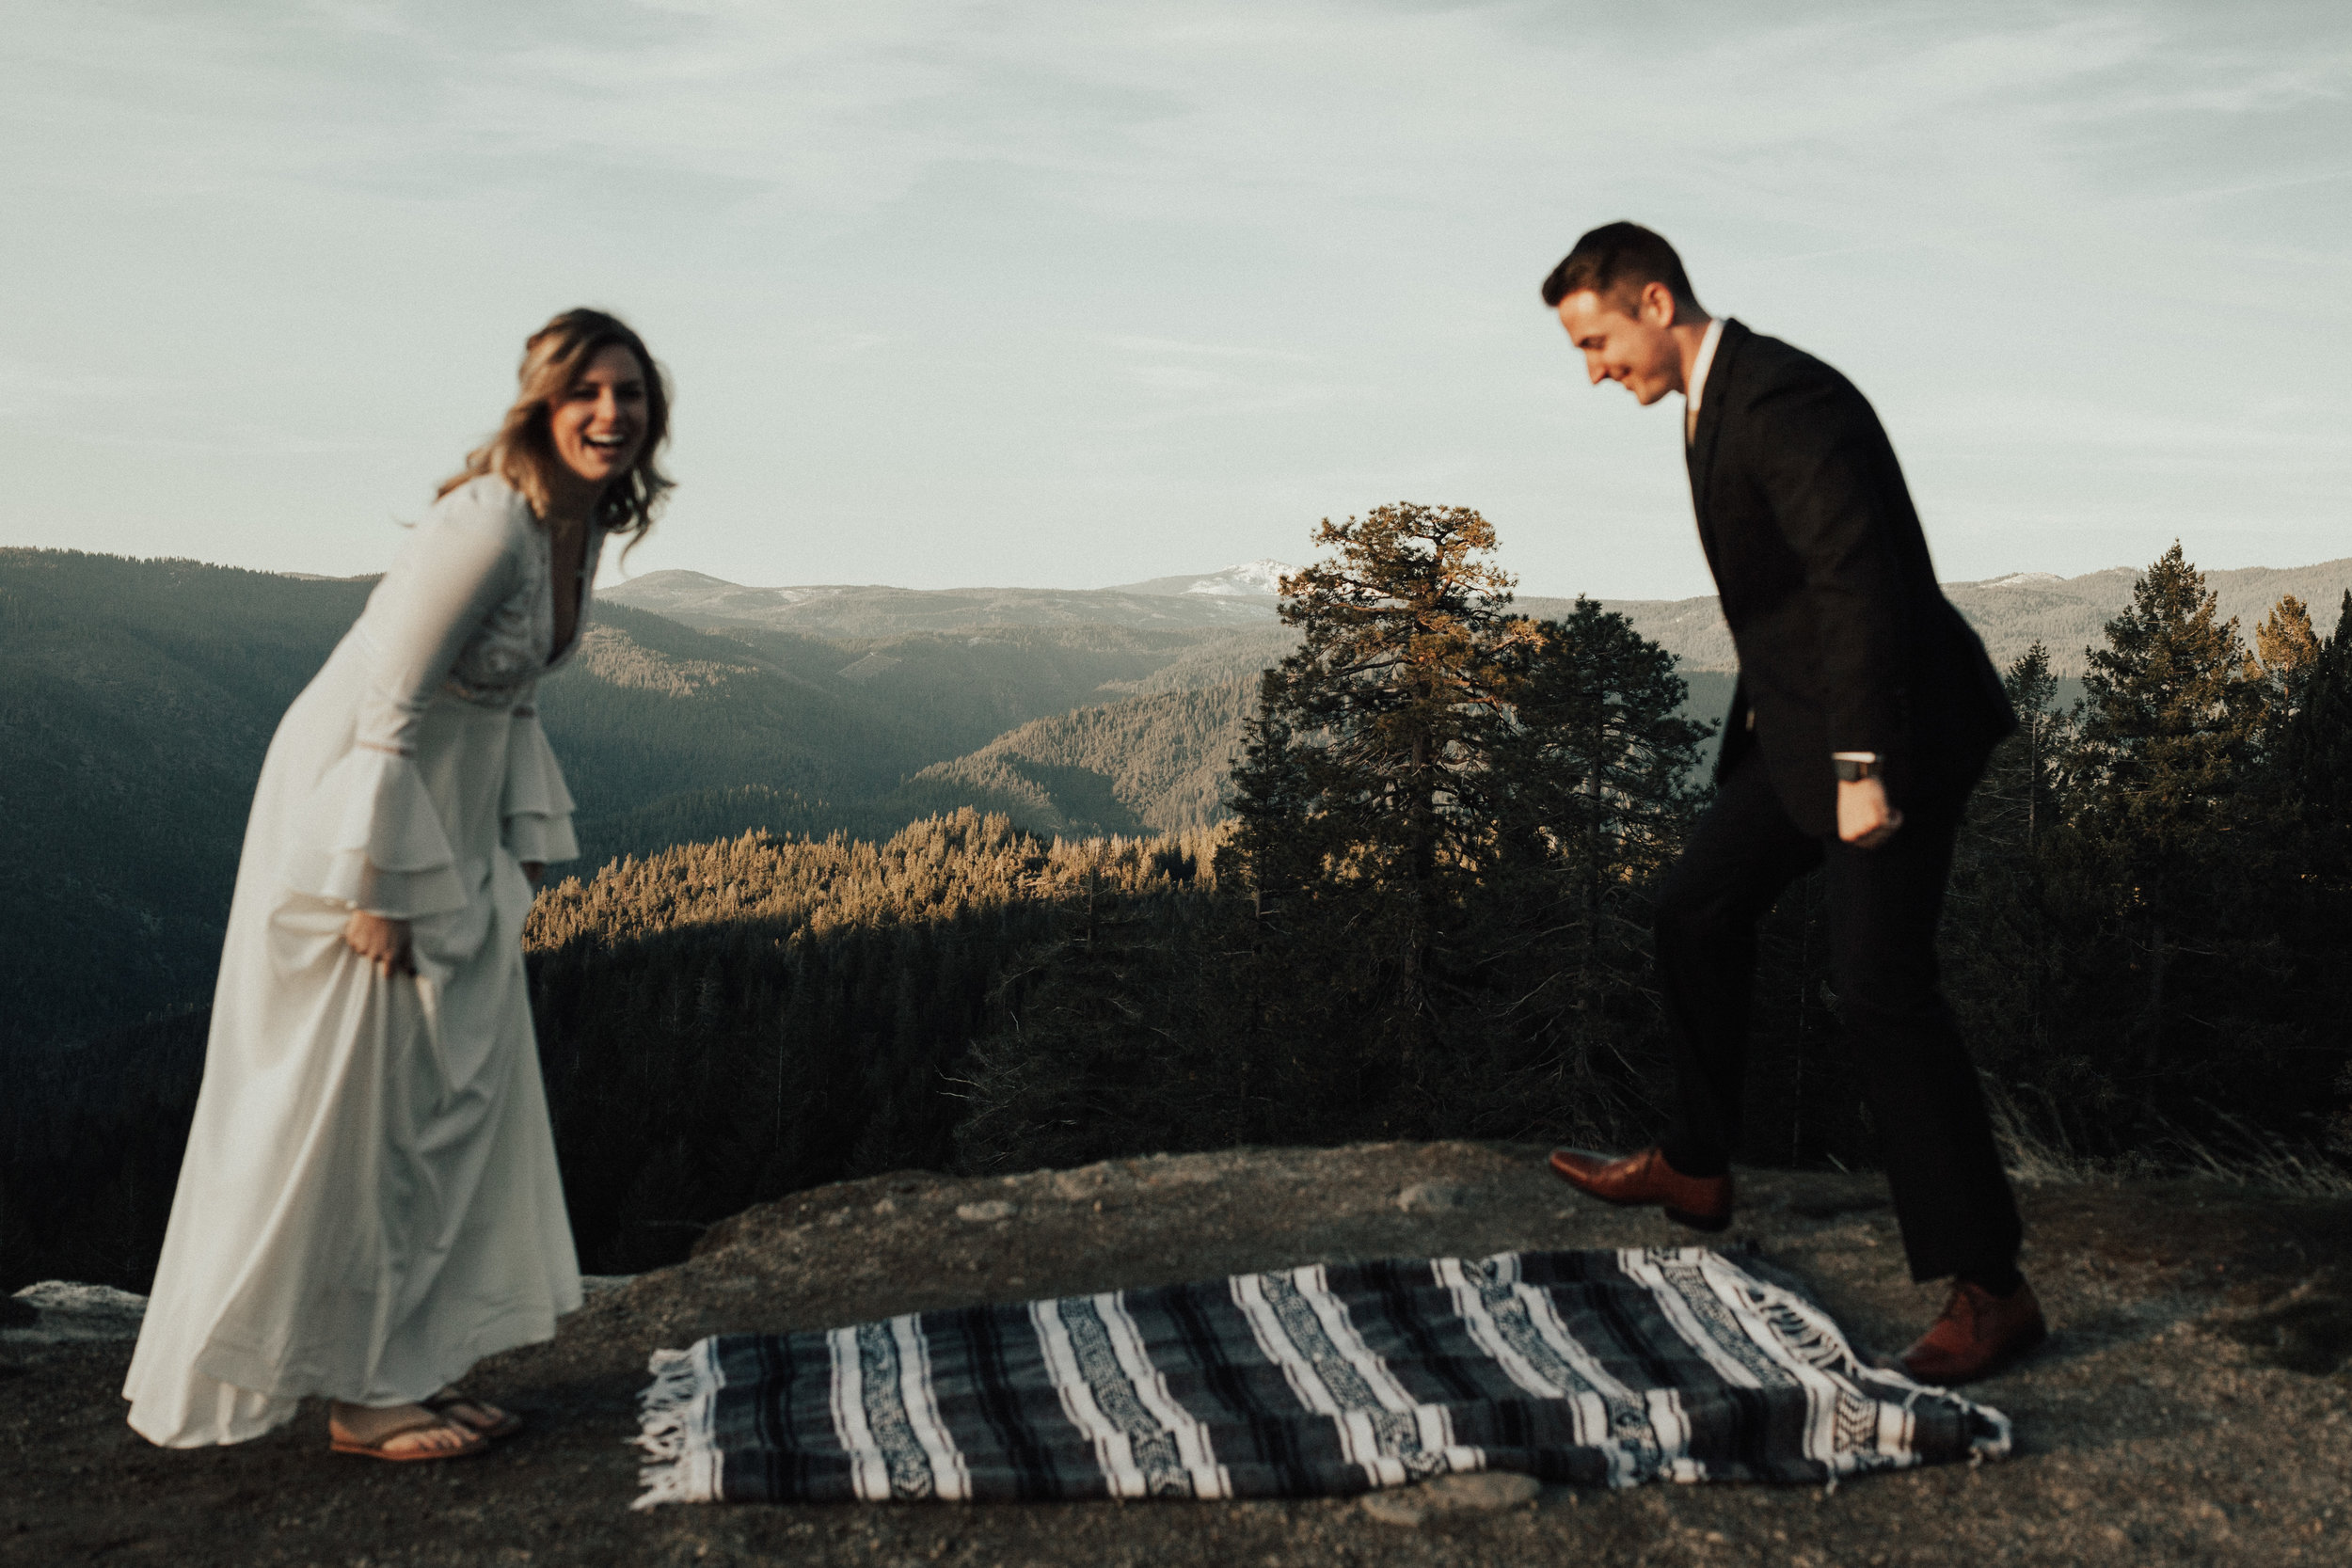 Bride laughing as her groom sets up a blanket to share picnic food and wedding cake ontop of.